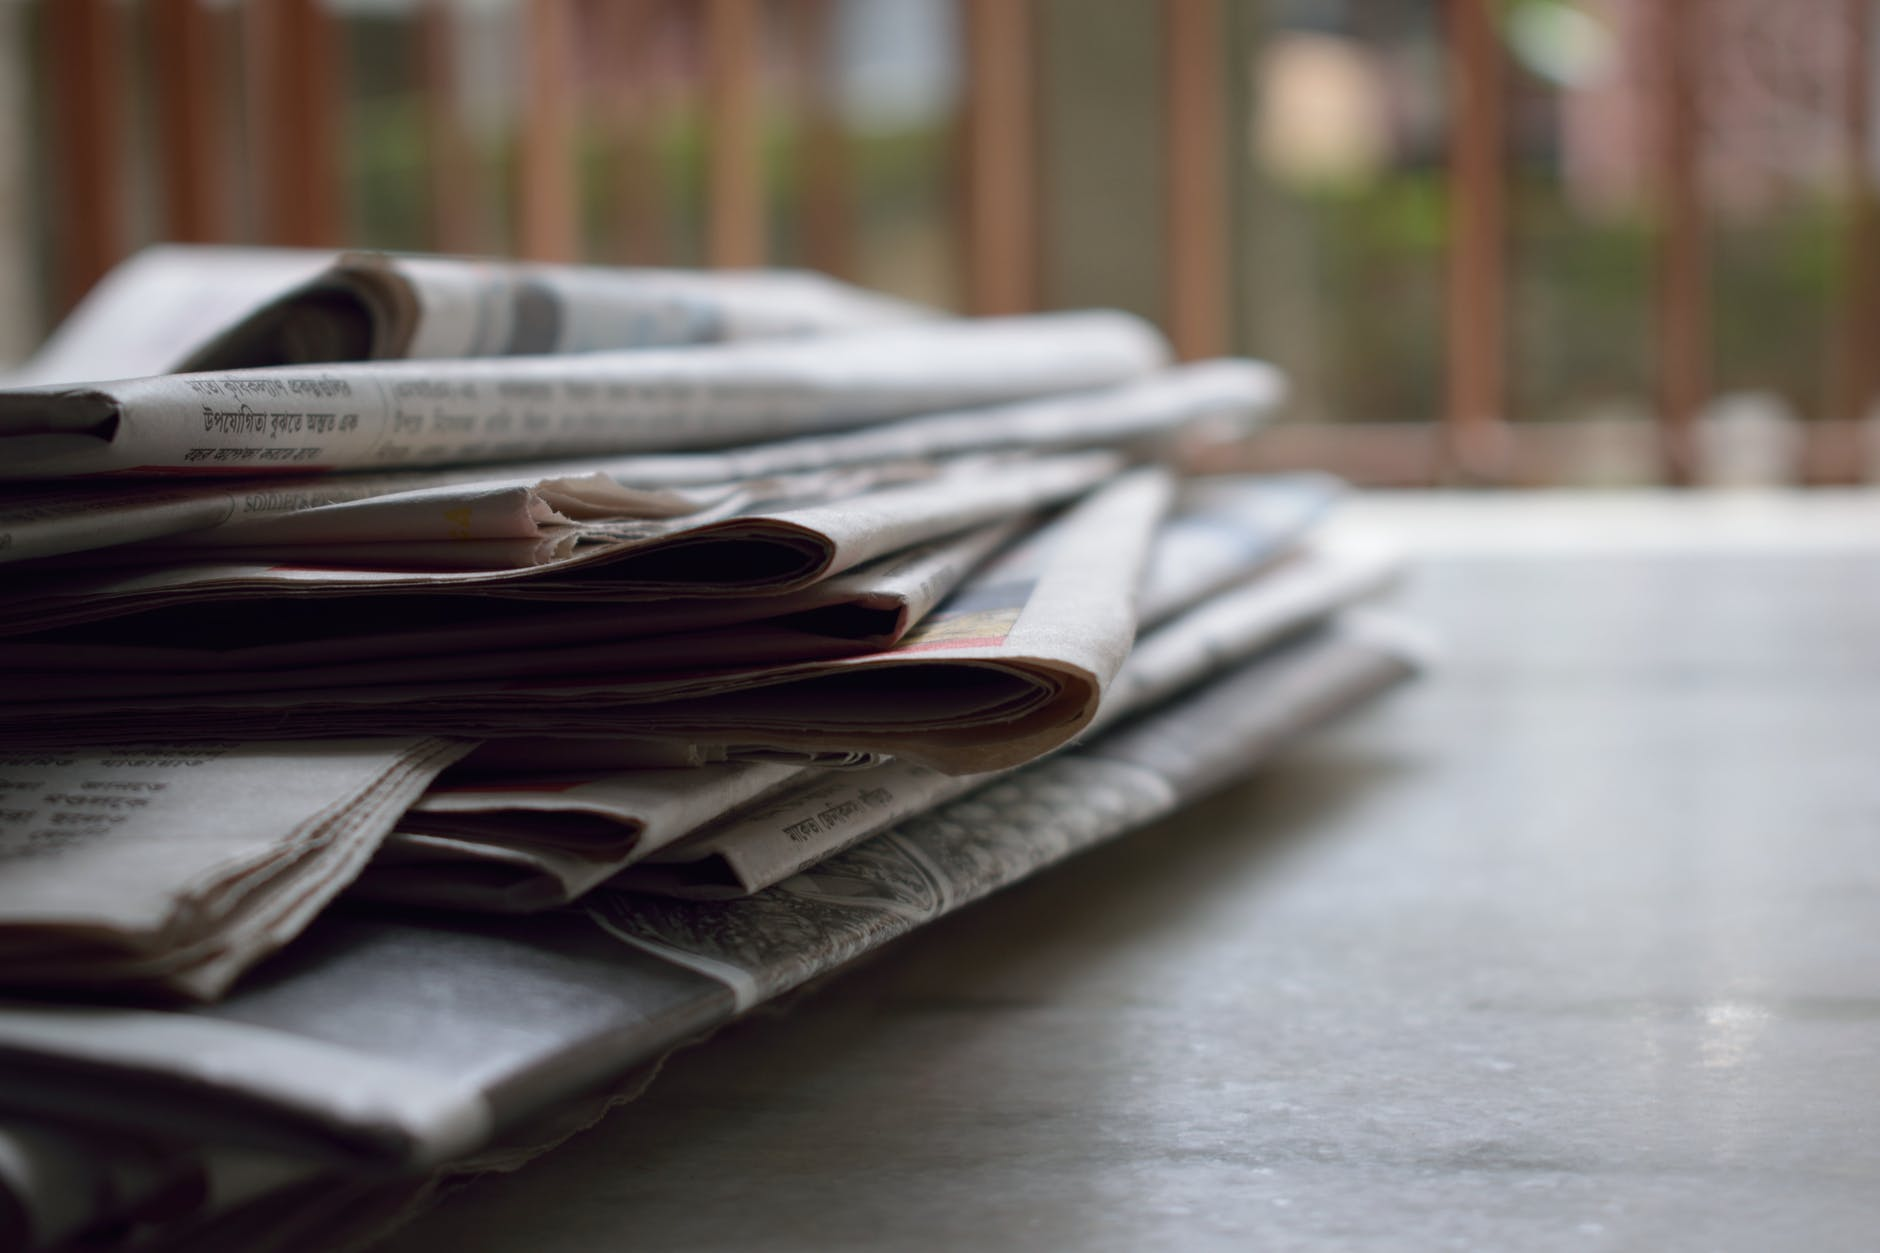 newspapers - Where Can You Learn More About Conference Schedules?